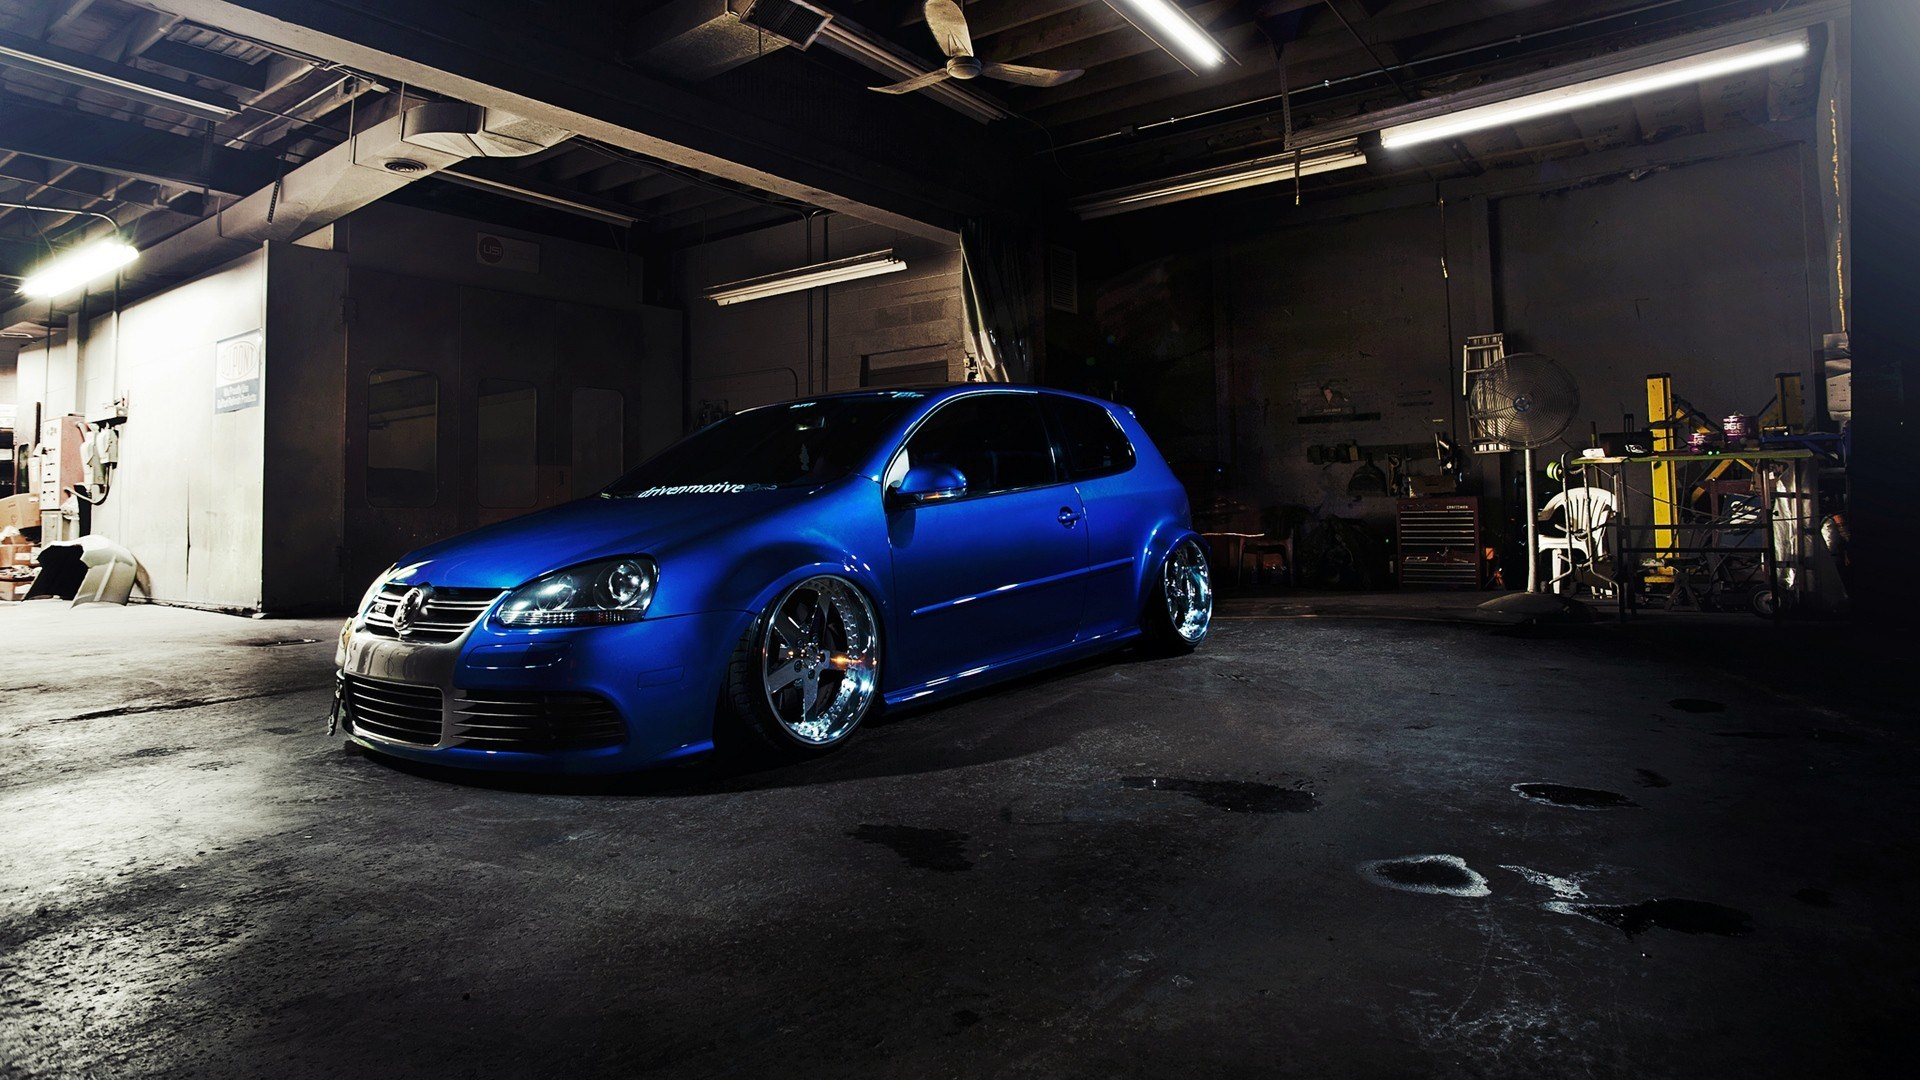 Volkswagen Golf Wallpapers High Quality